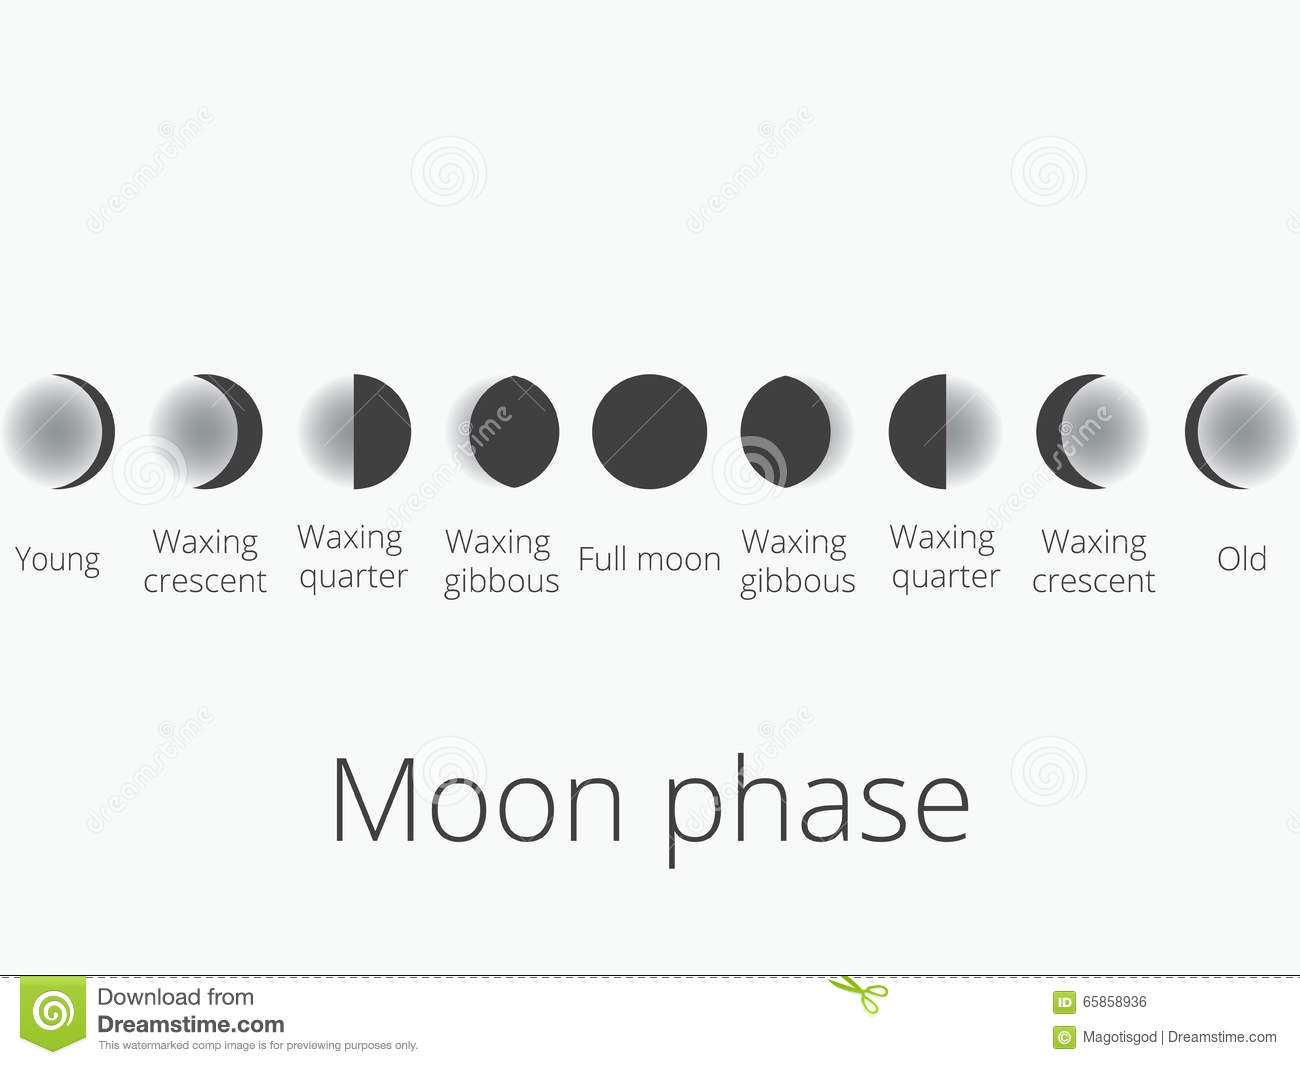 The phases of the moon the whole cycle from new moon to full v the phases of the moon the whole cycle from new moon to full v pooptronica Gallery